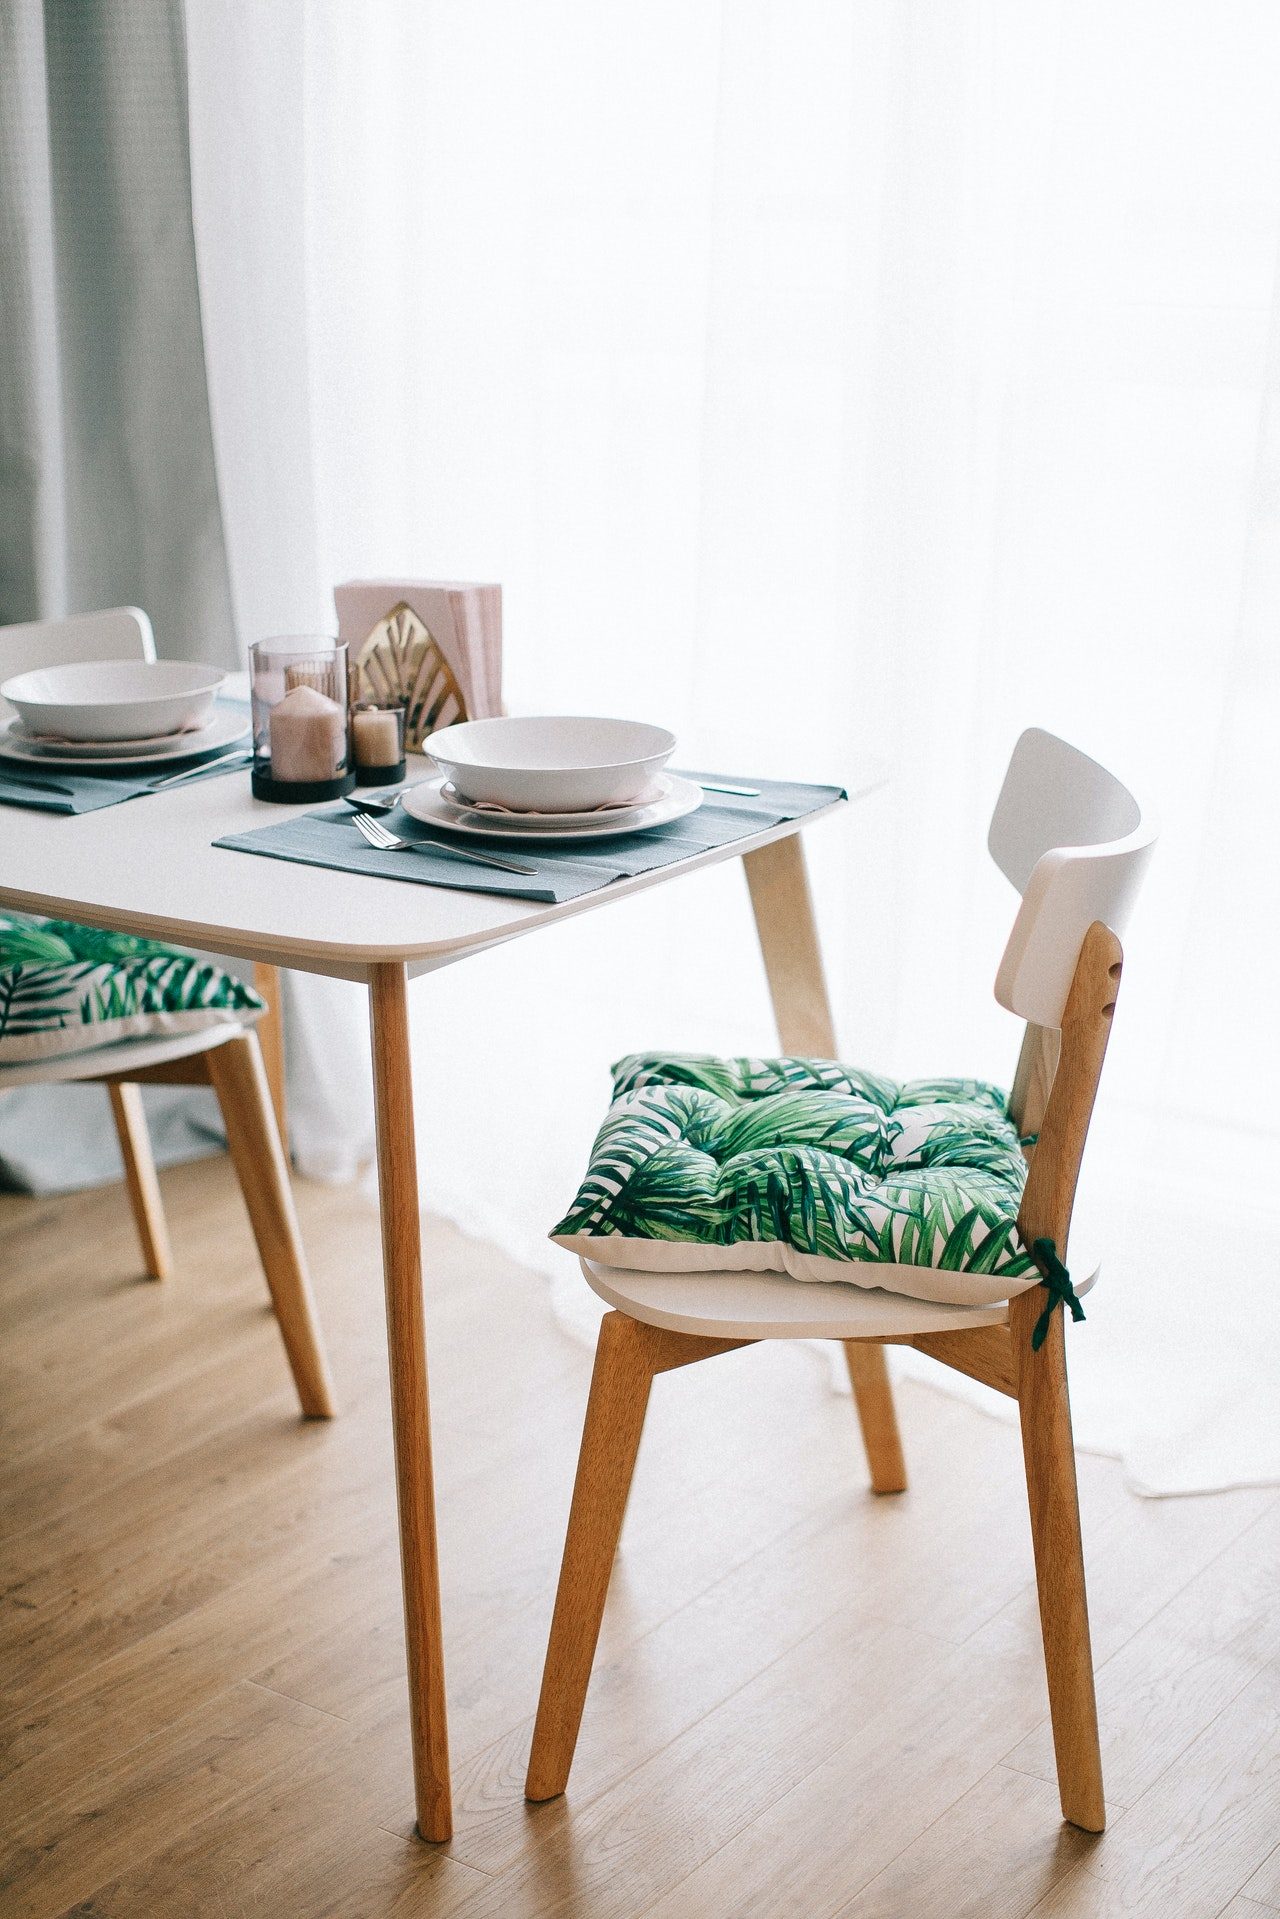 Dining table with plant print cushions